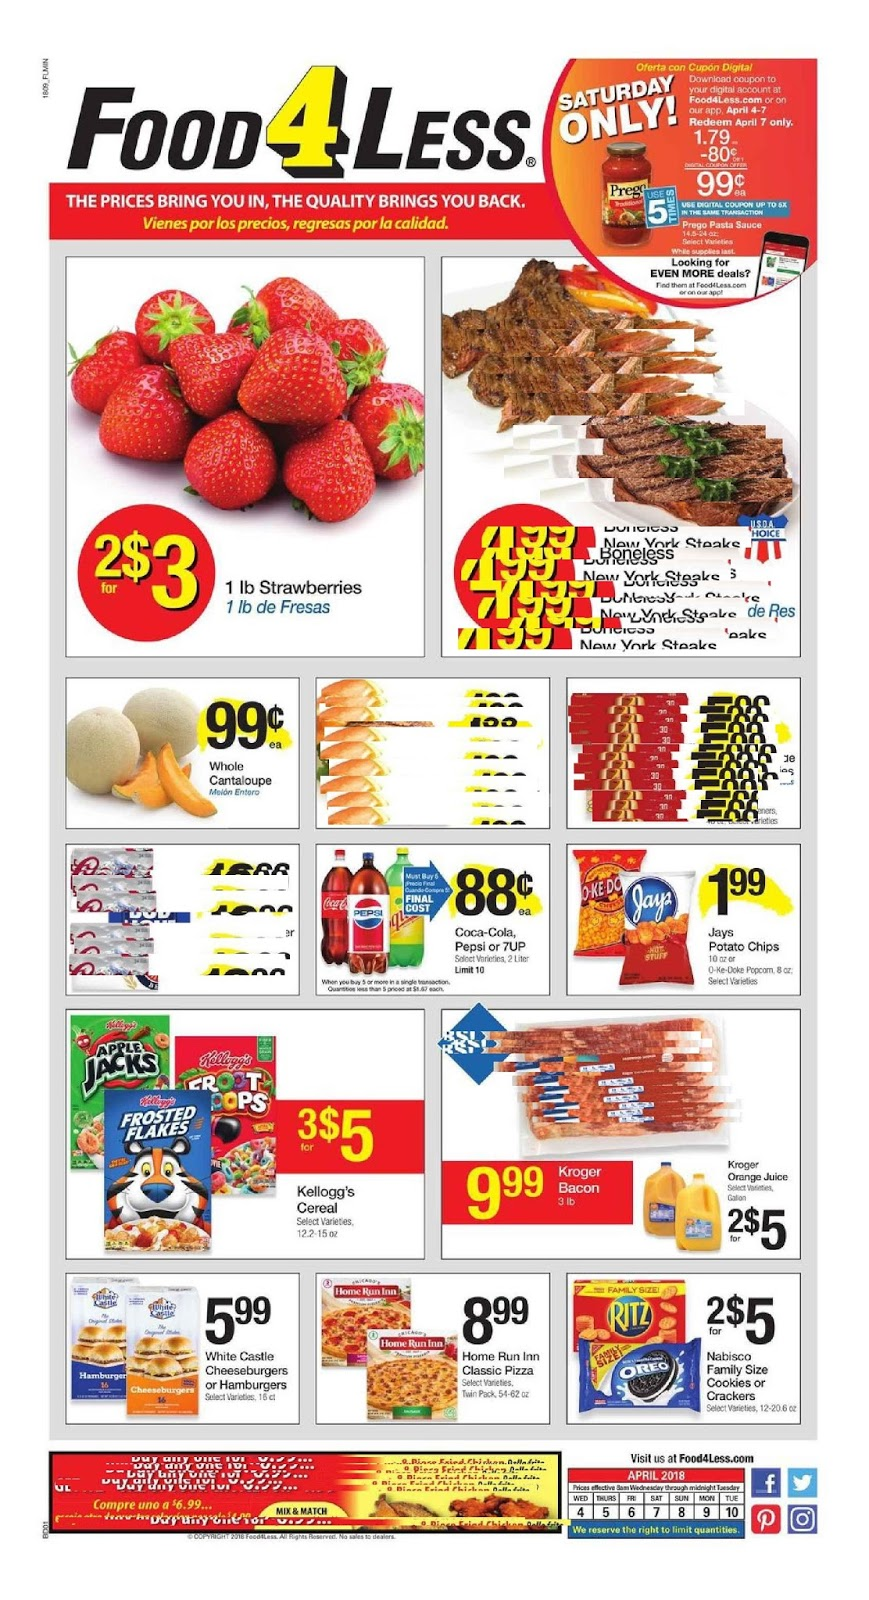 Food 4 Less Weekly Ad Deals April 4 - 10, 2018 | Daily